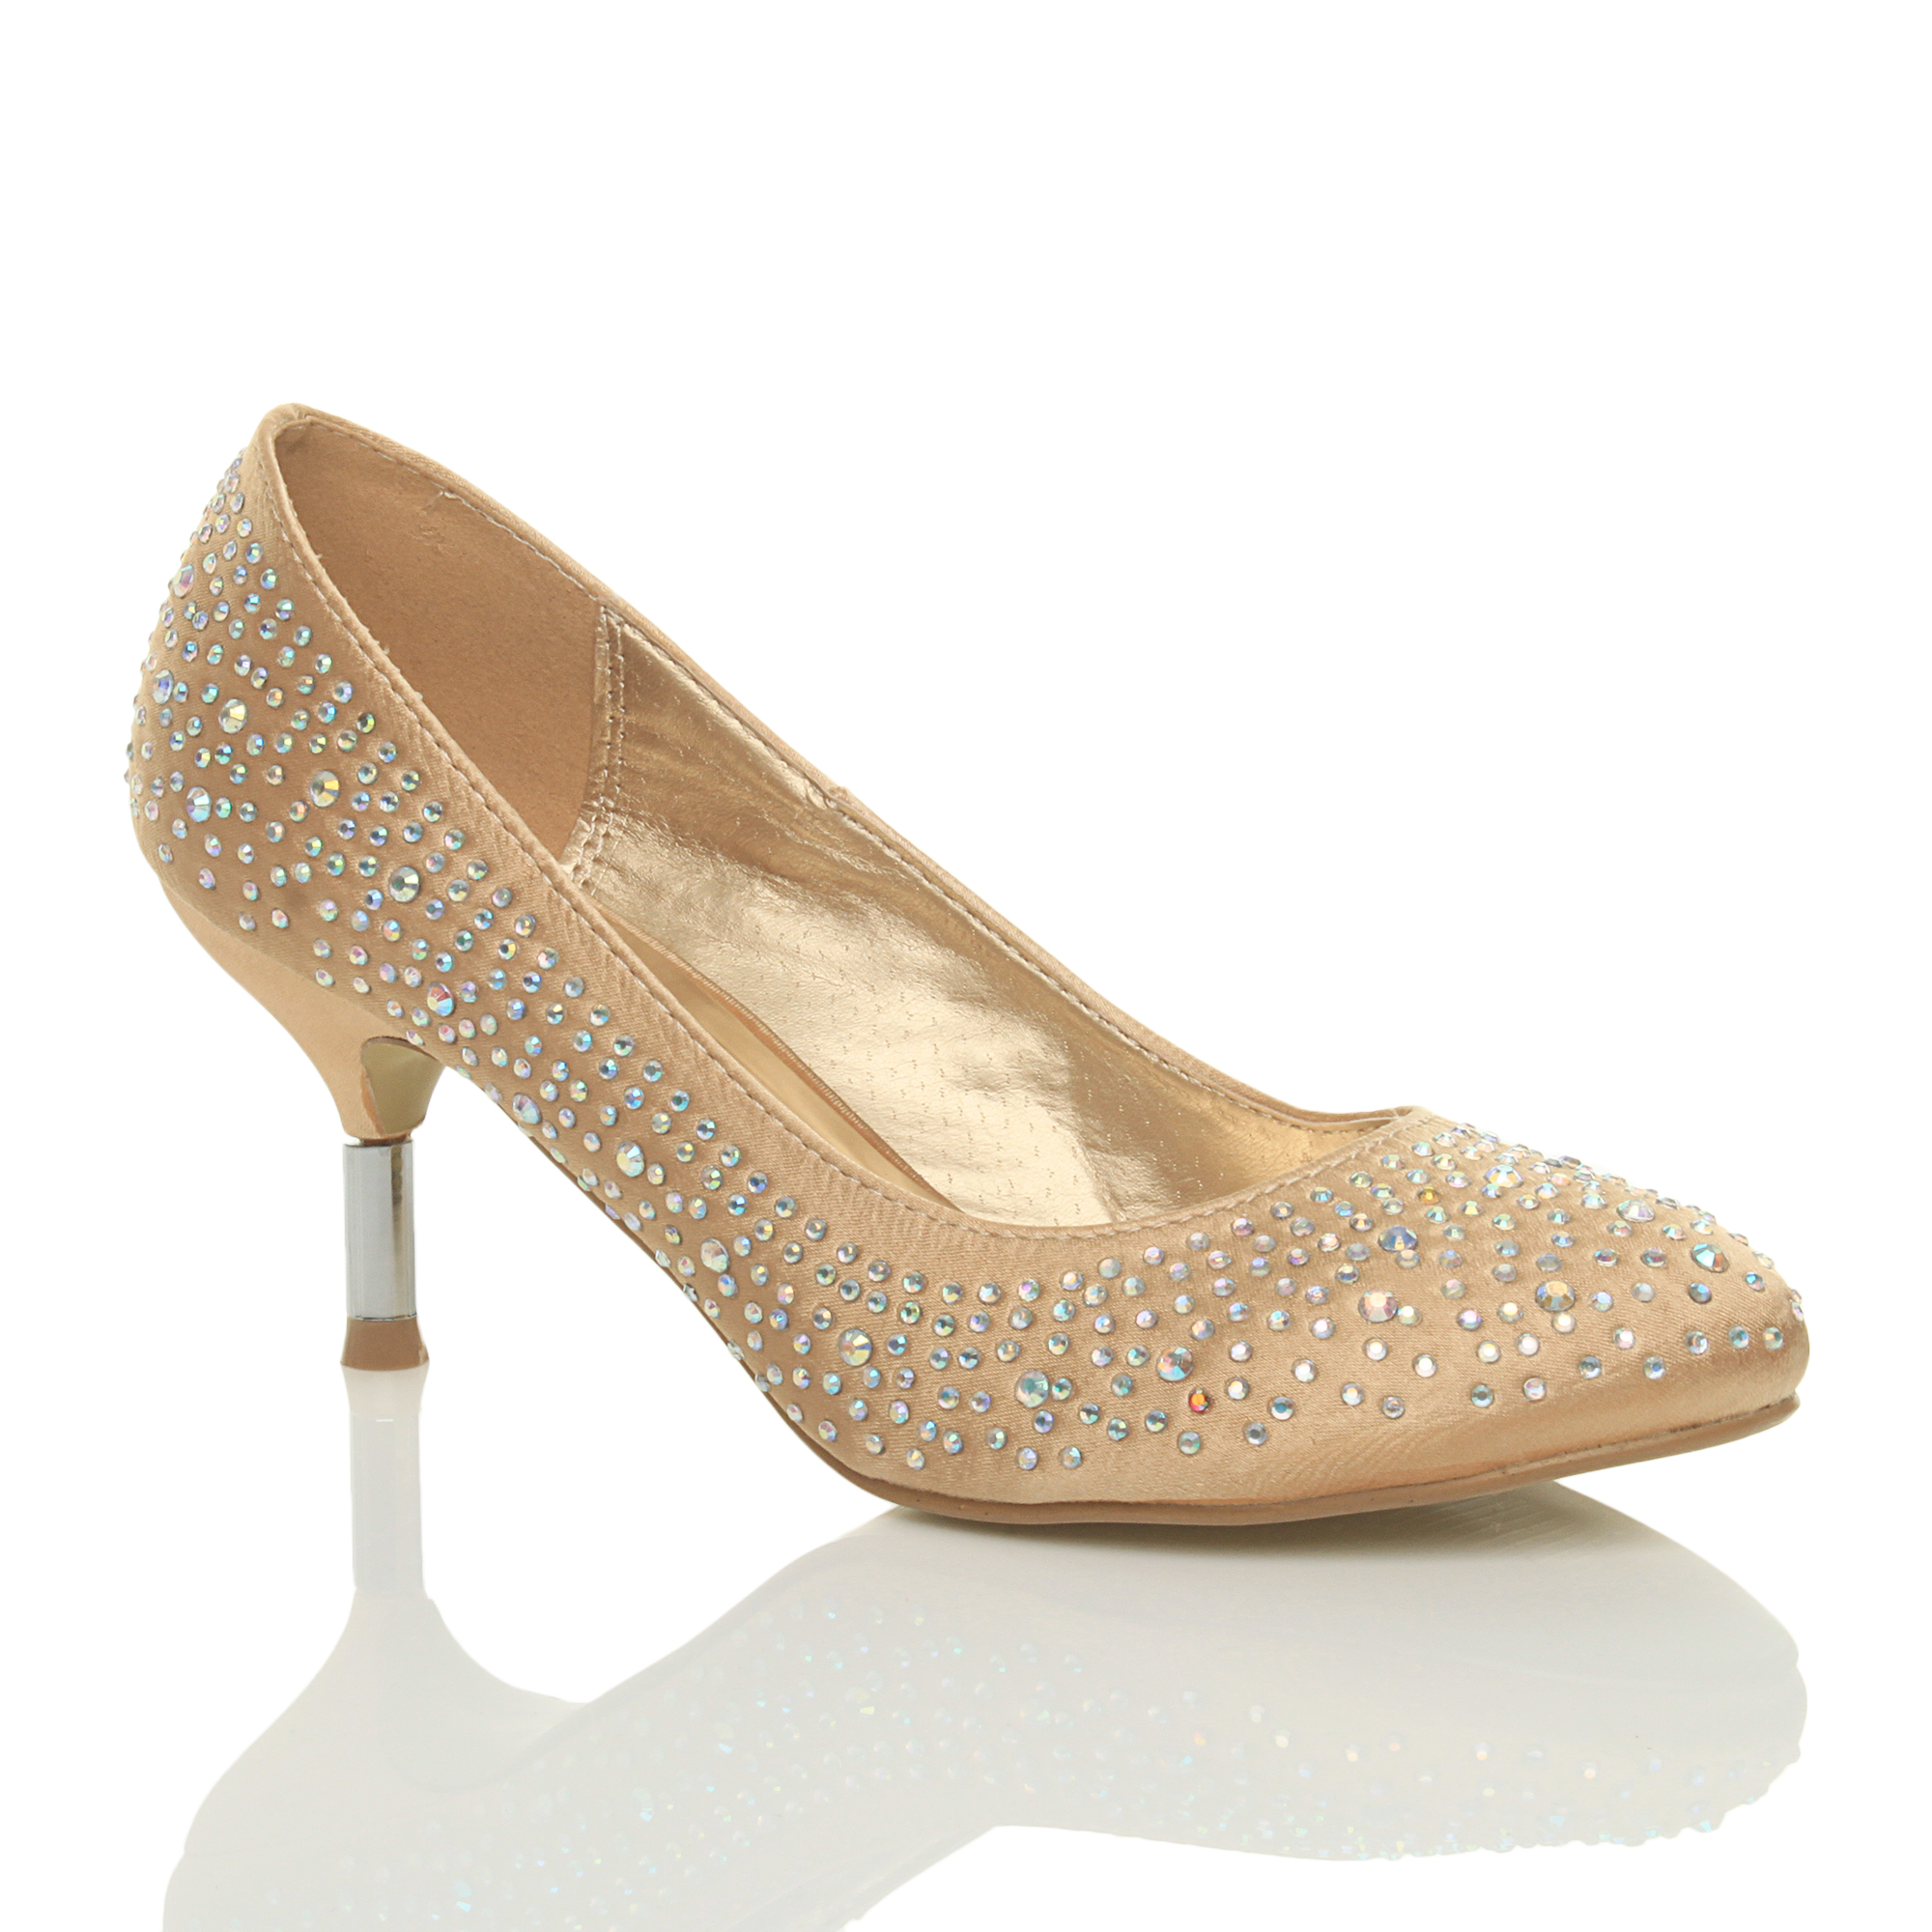 WOMENS LADIES MID LOW HEEL WEDDING PROM BRIDAL DIAMONTE COURT SHOES PUMPS SIZE  eBay